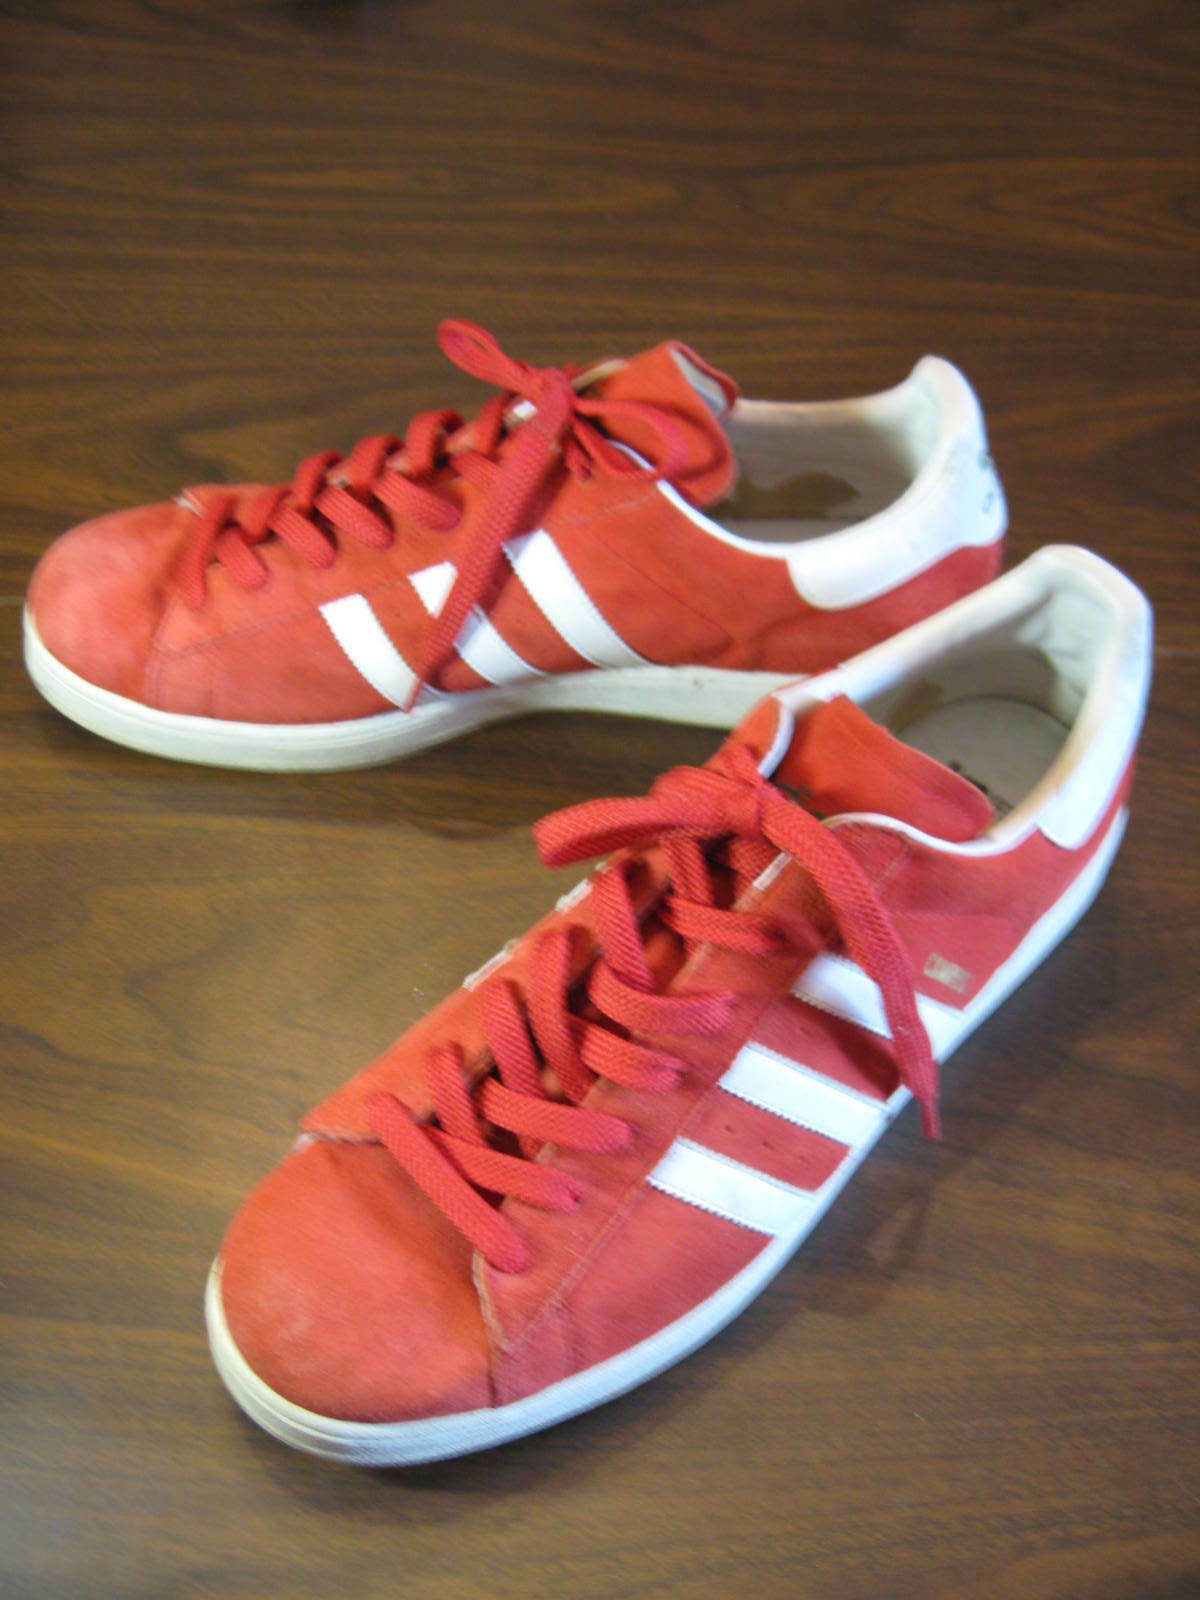 ADIDAS CAMPUS ll ORIGINALS With Trefoil Red Basketball Shoes Comfortable